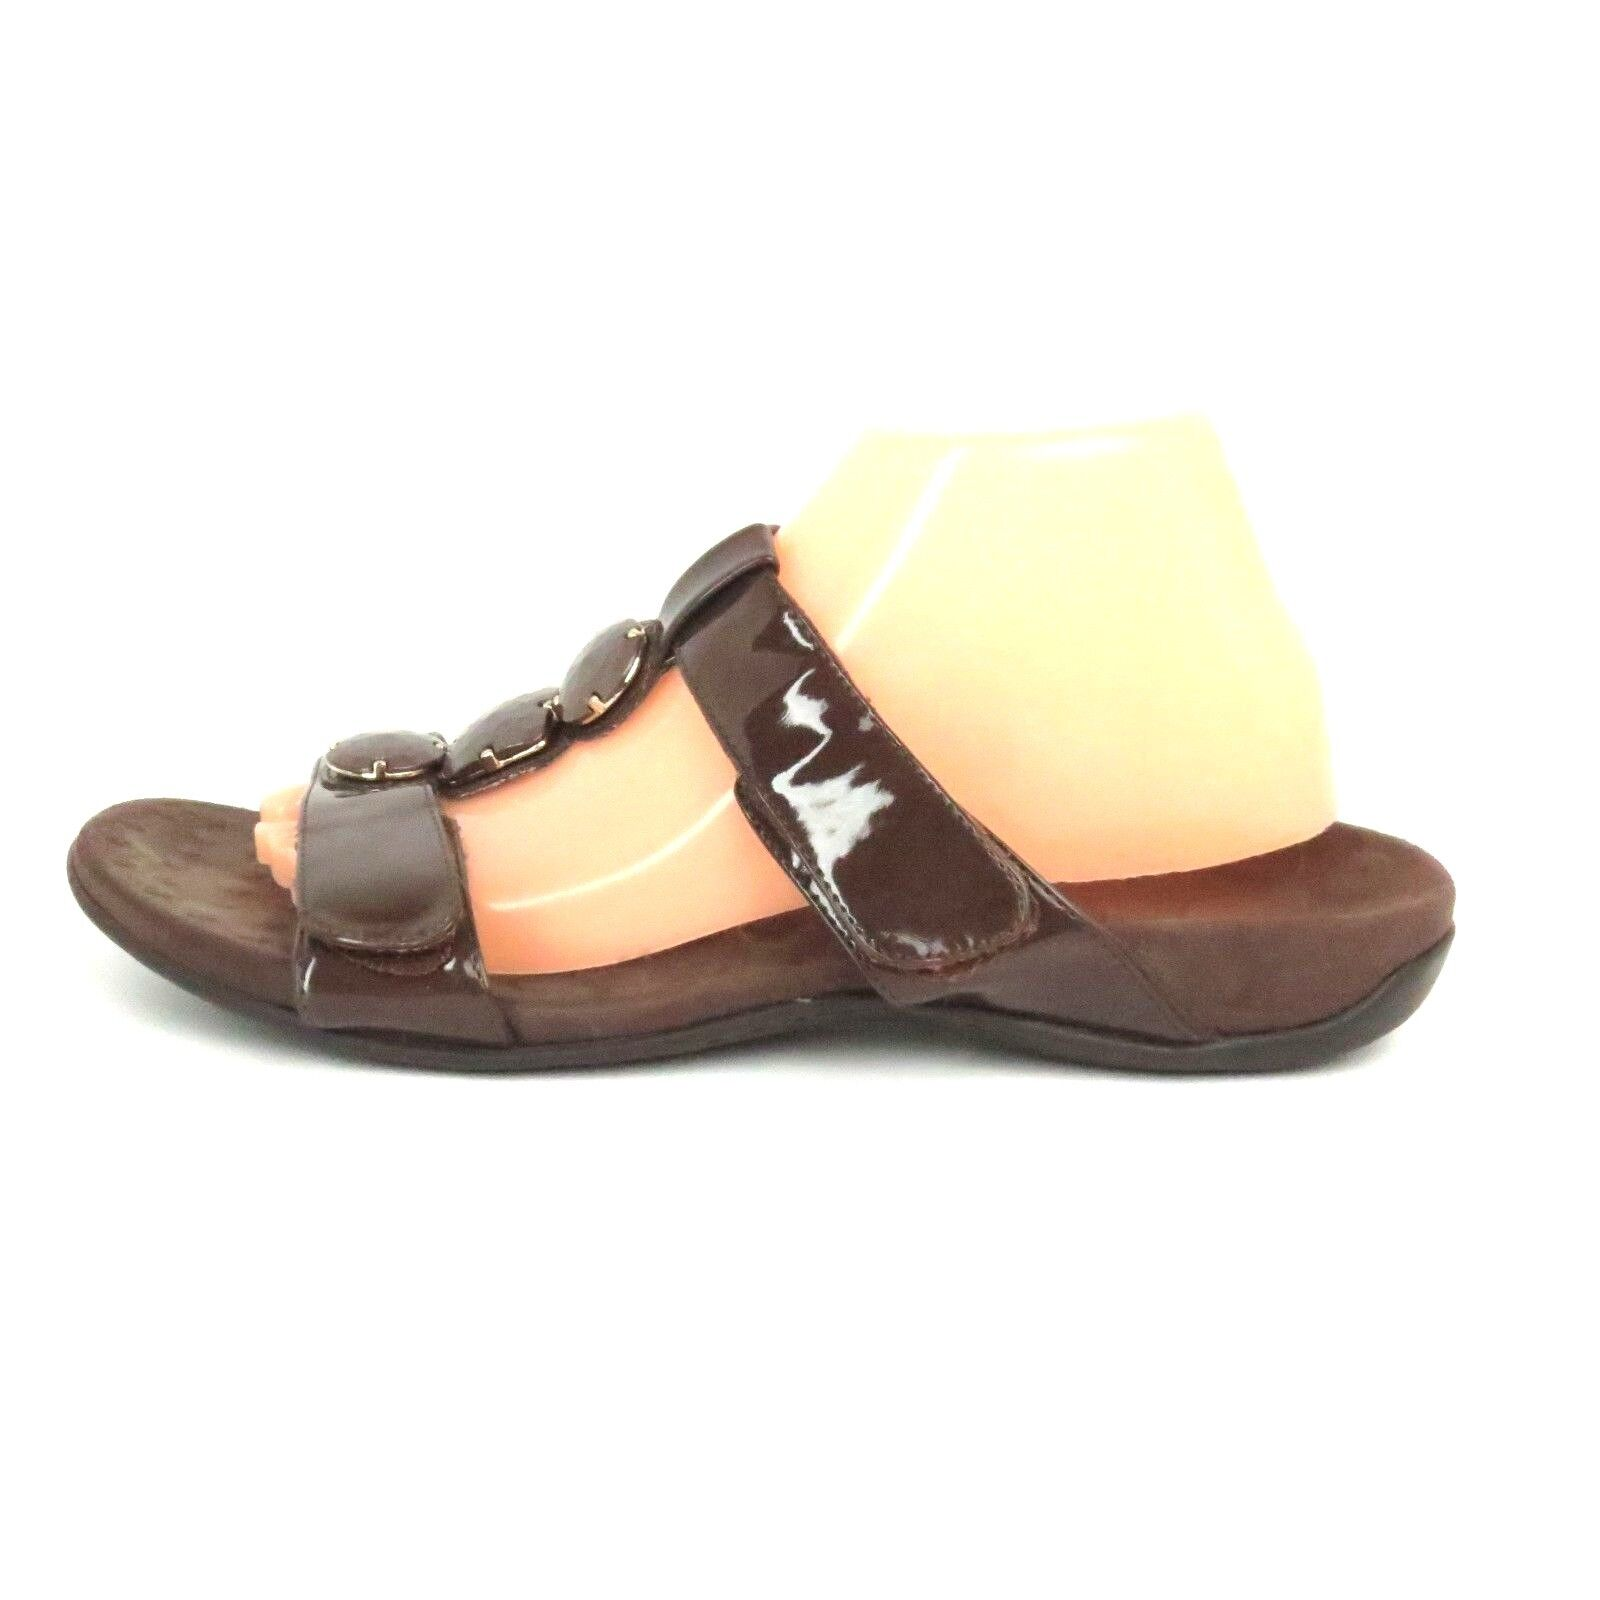 Orthaheel Albany T Strap Slide Sandals Chocolate Size US 10